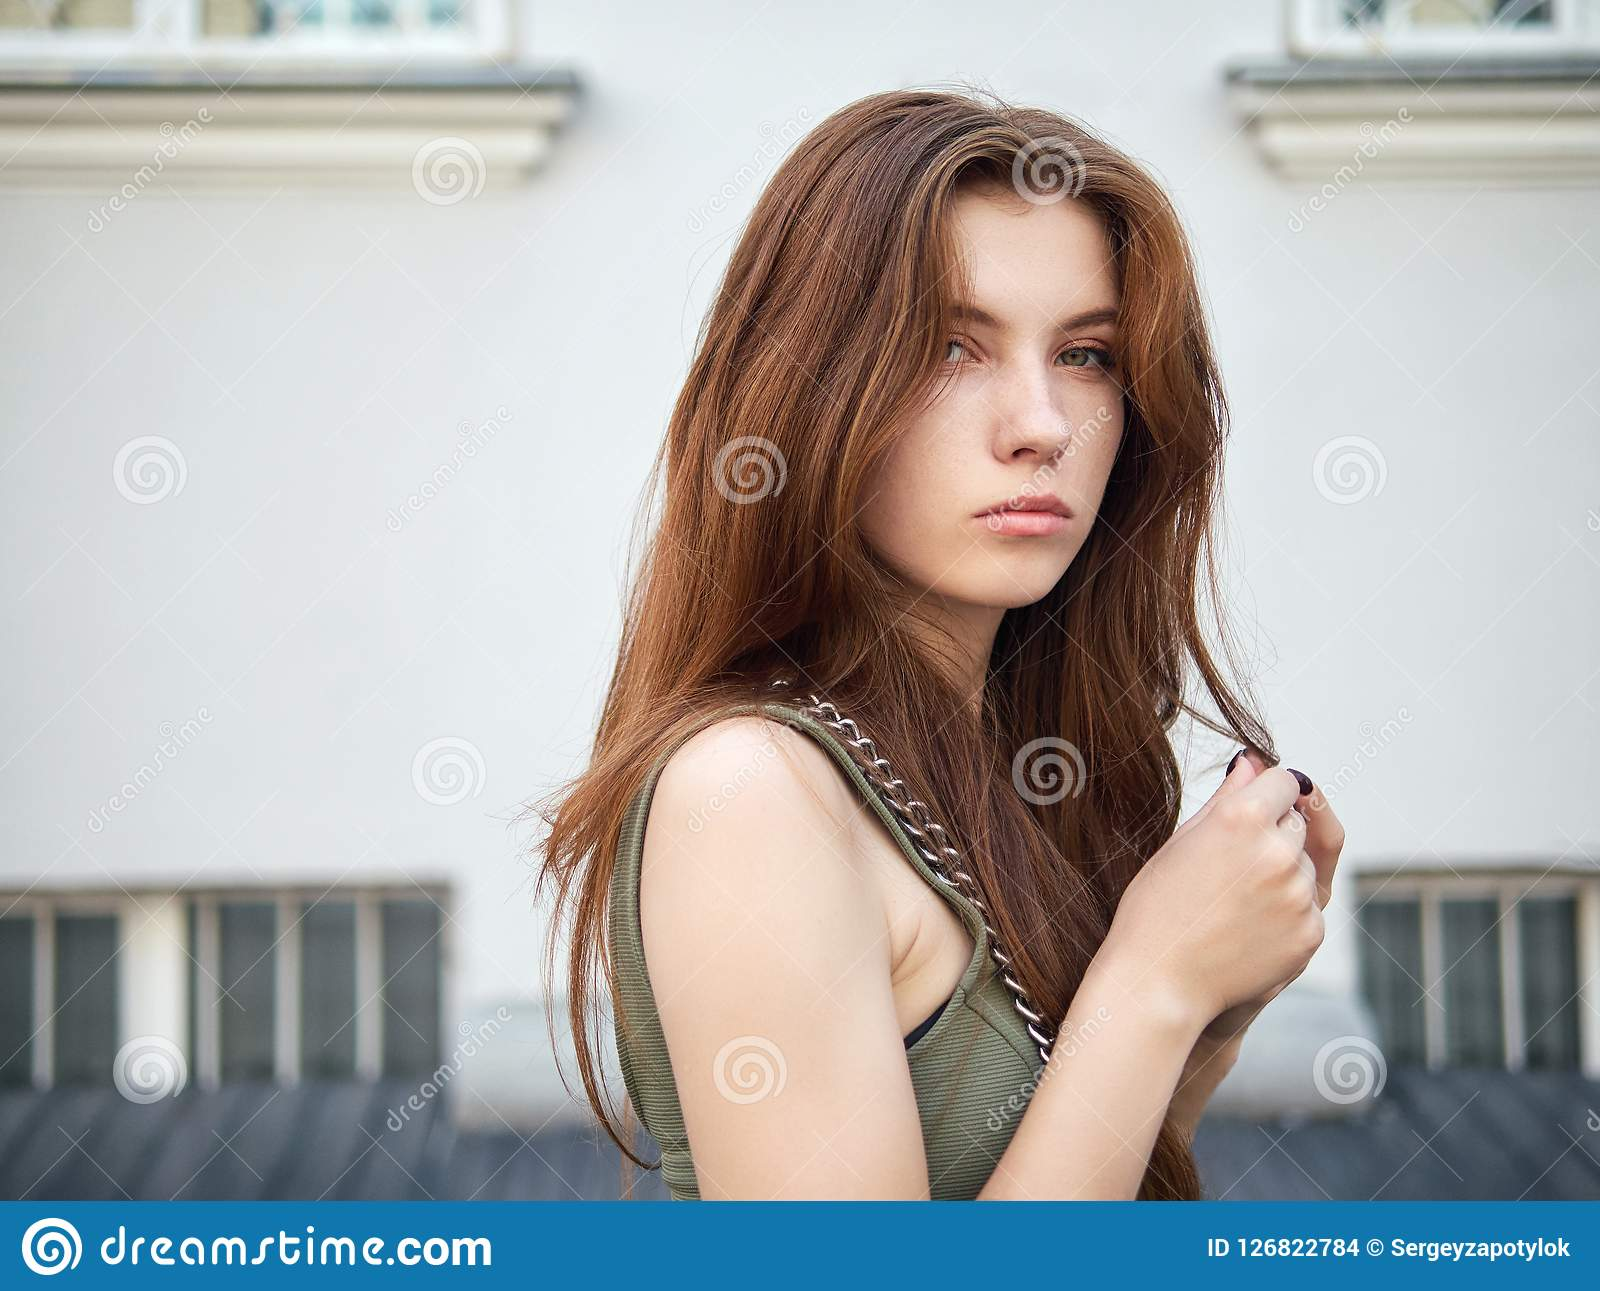 What redhead woman posing the same